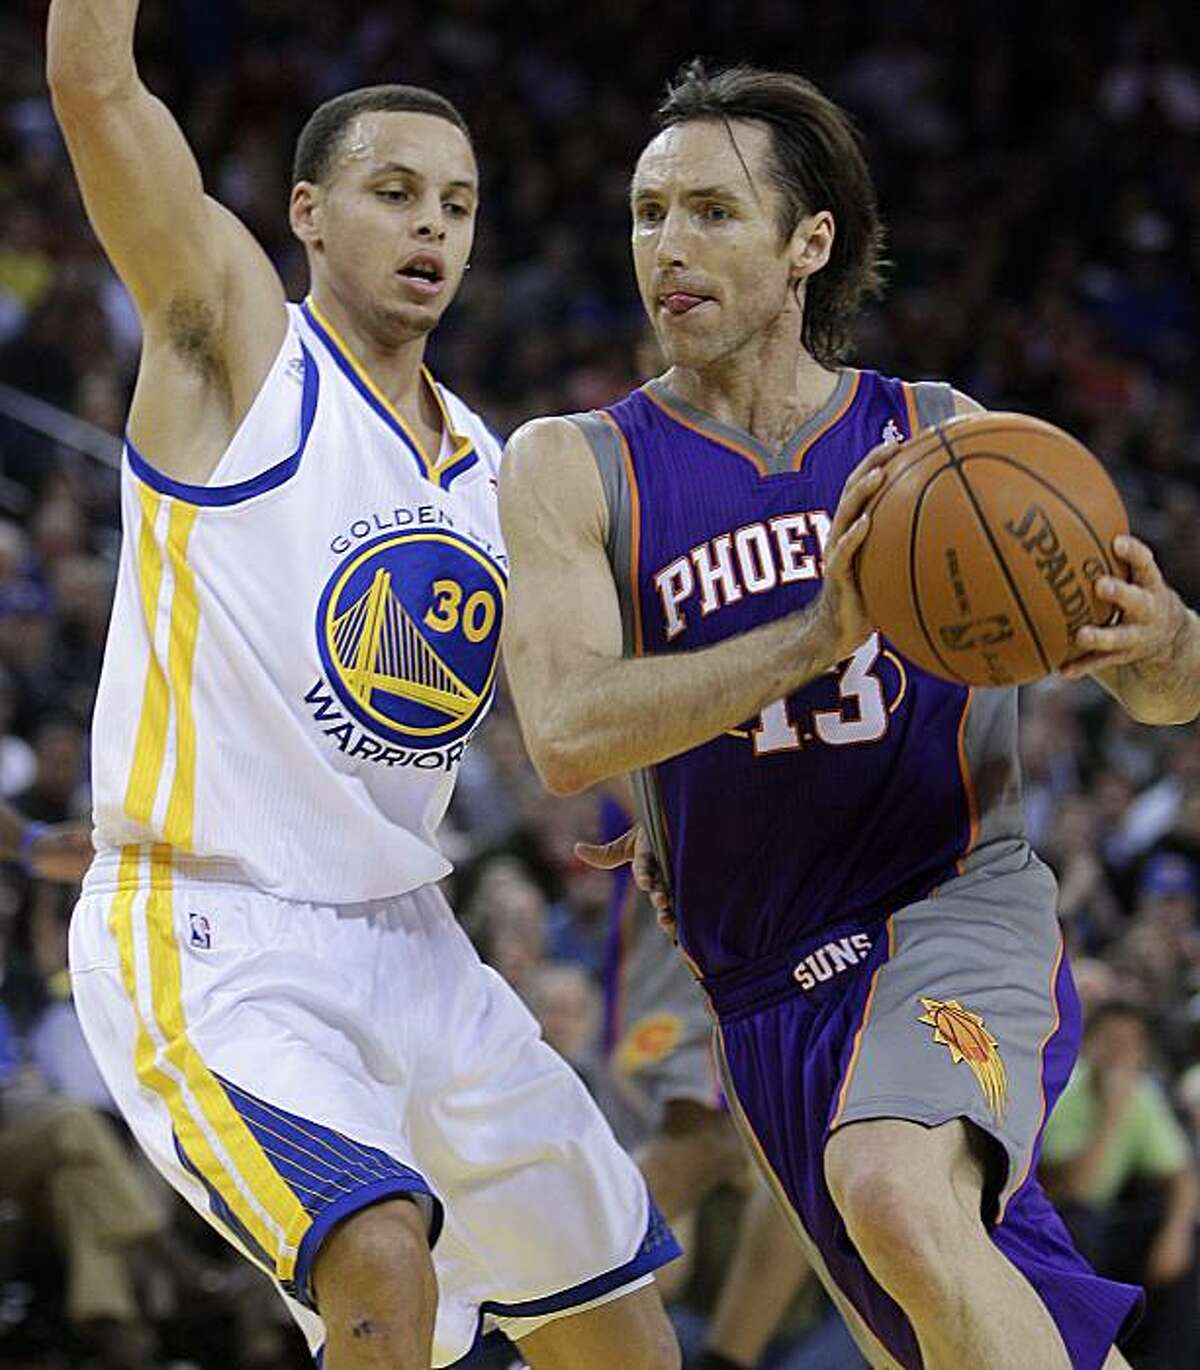 Phoenix Suns' Steve Nash, right, drives to the basket as Golden State Warriors' Stephen Curry defends during the first half of an NBA basketball game Monday, Feb. 7, 2011, in Oakland, Calif.